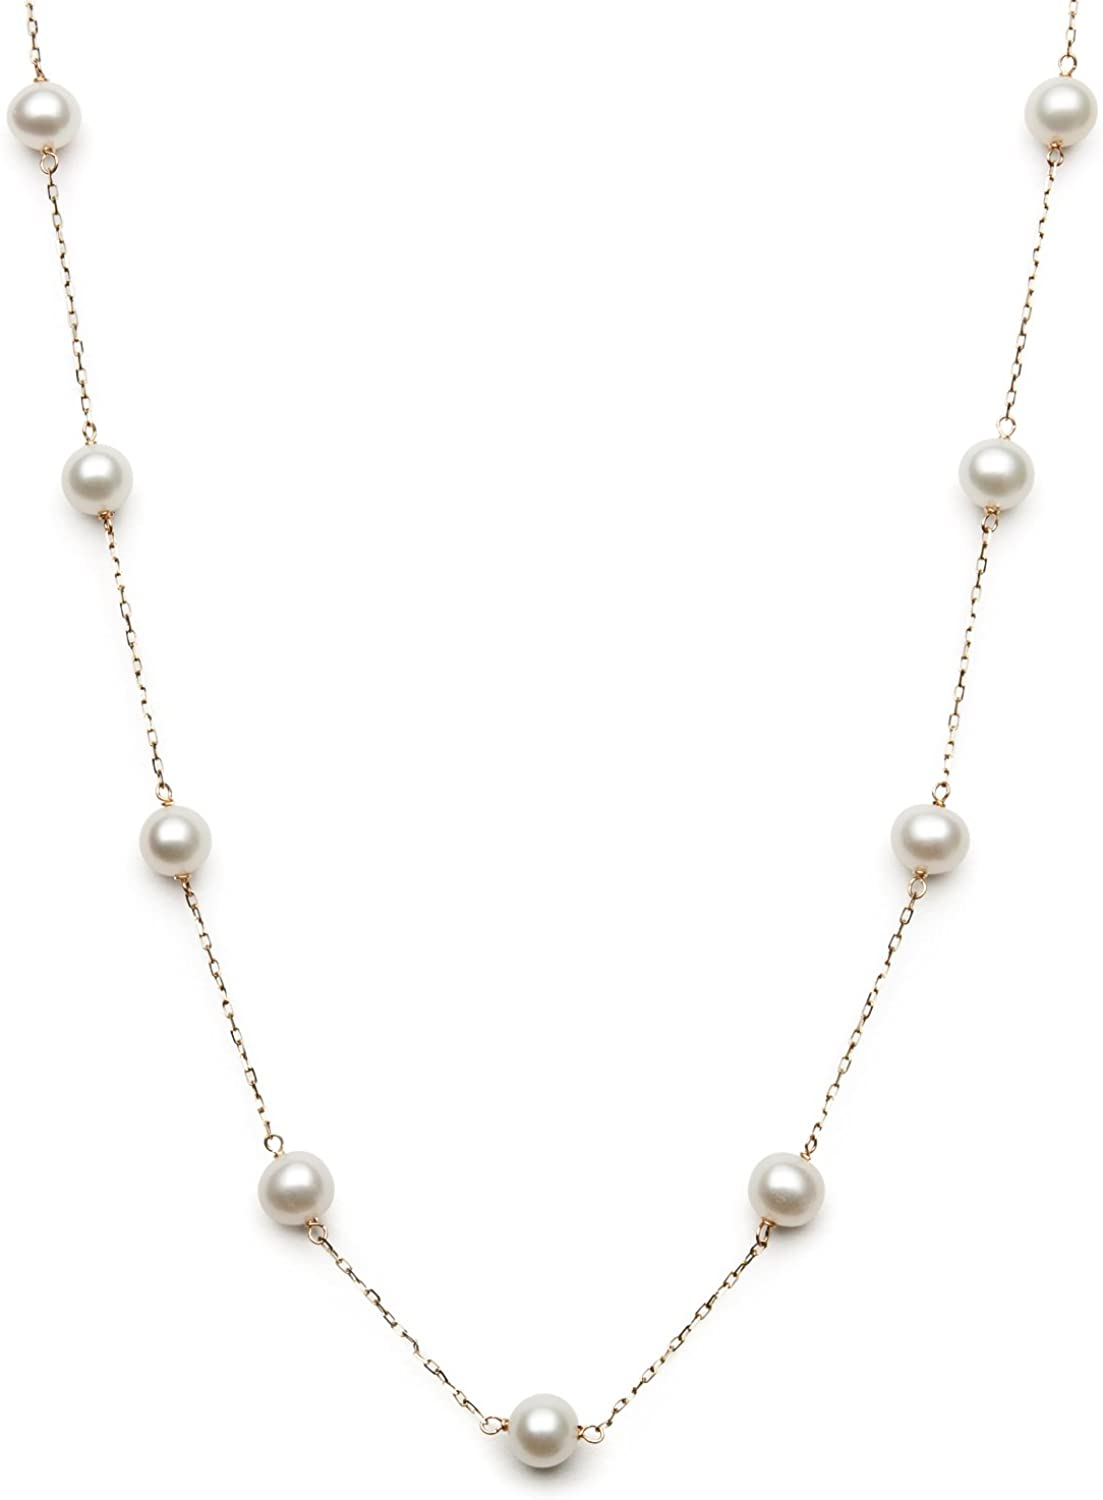 10K Gold Cultured Freshwater Pearl Station Chain Necklace,18